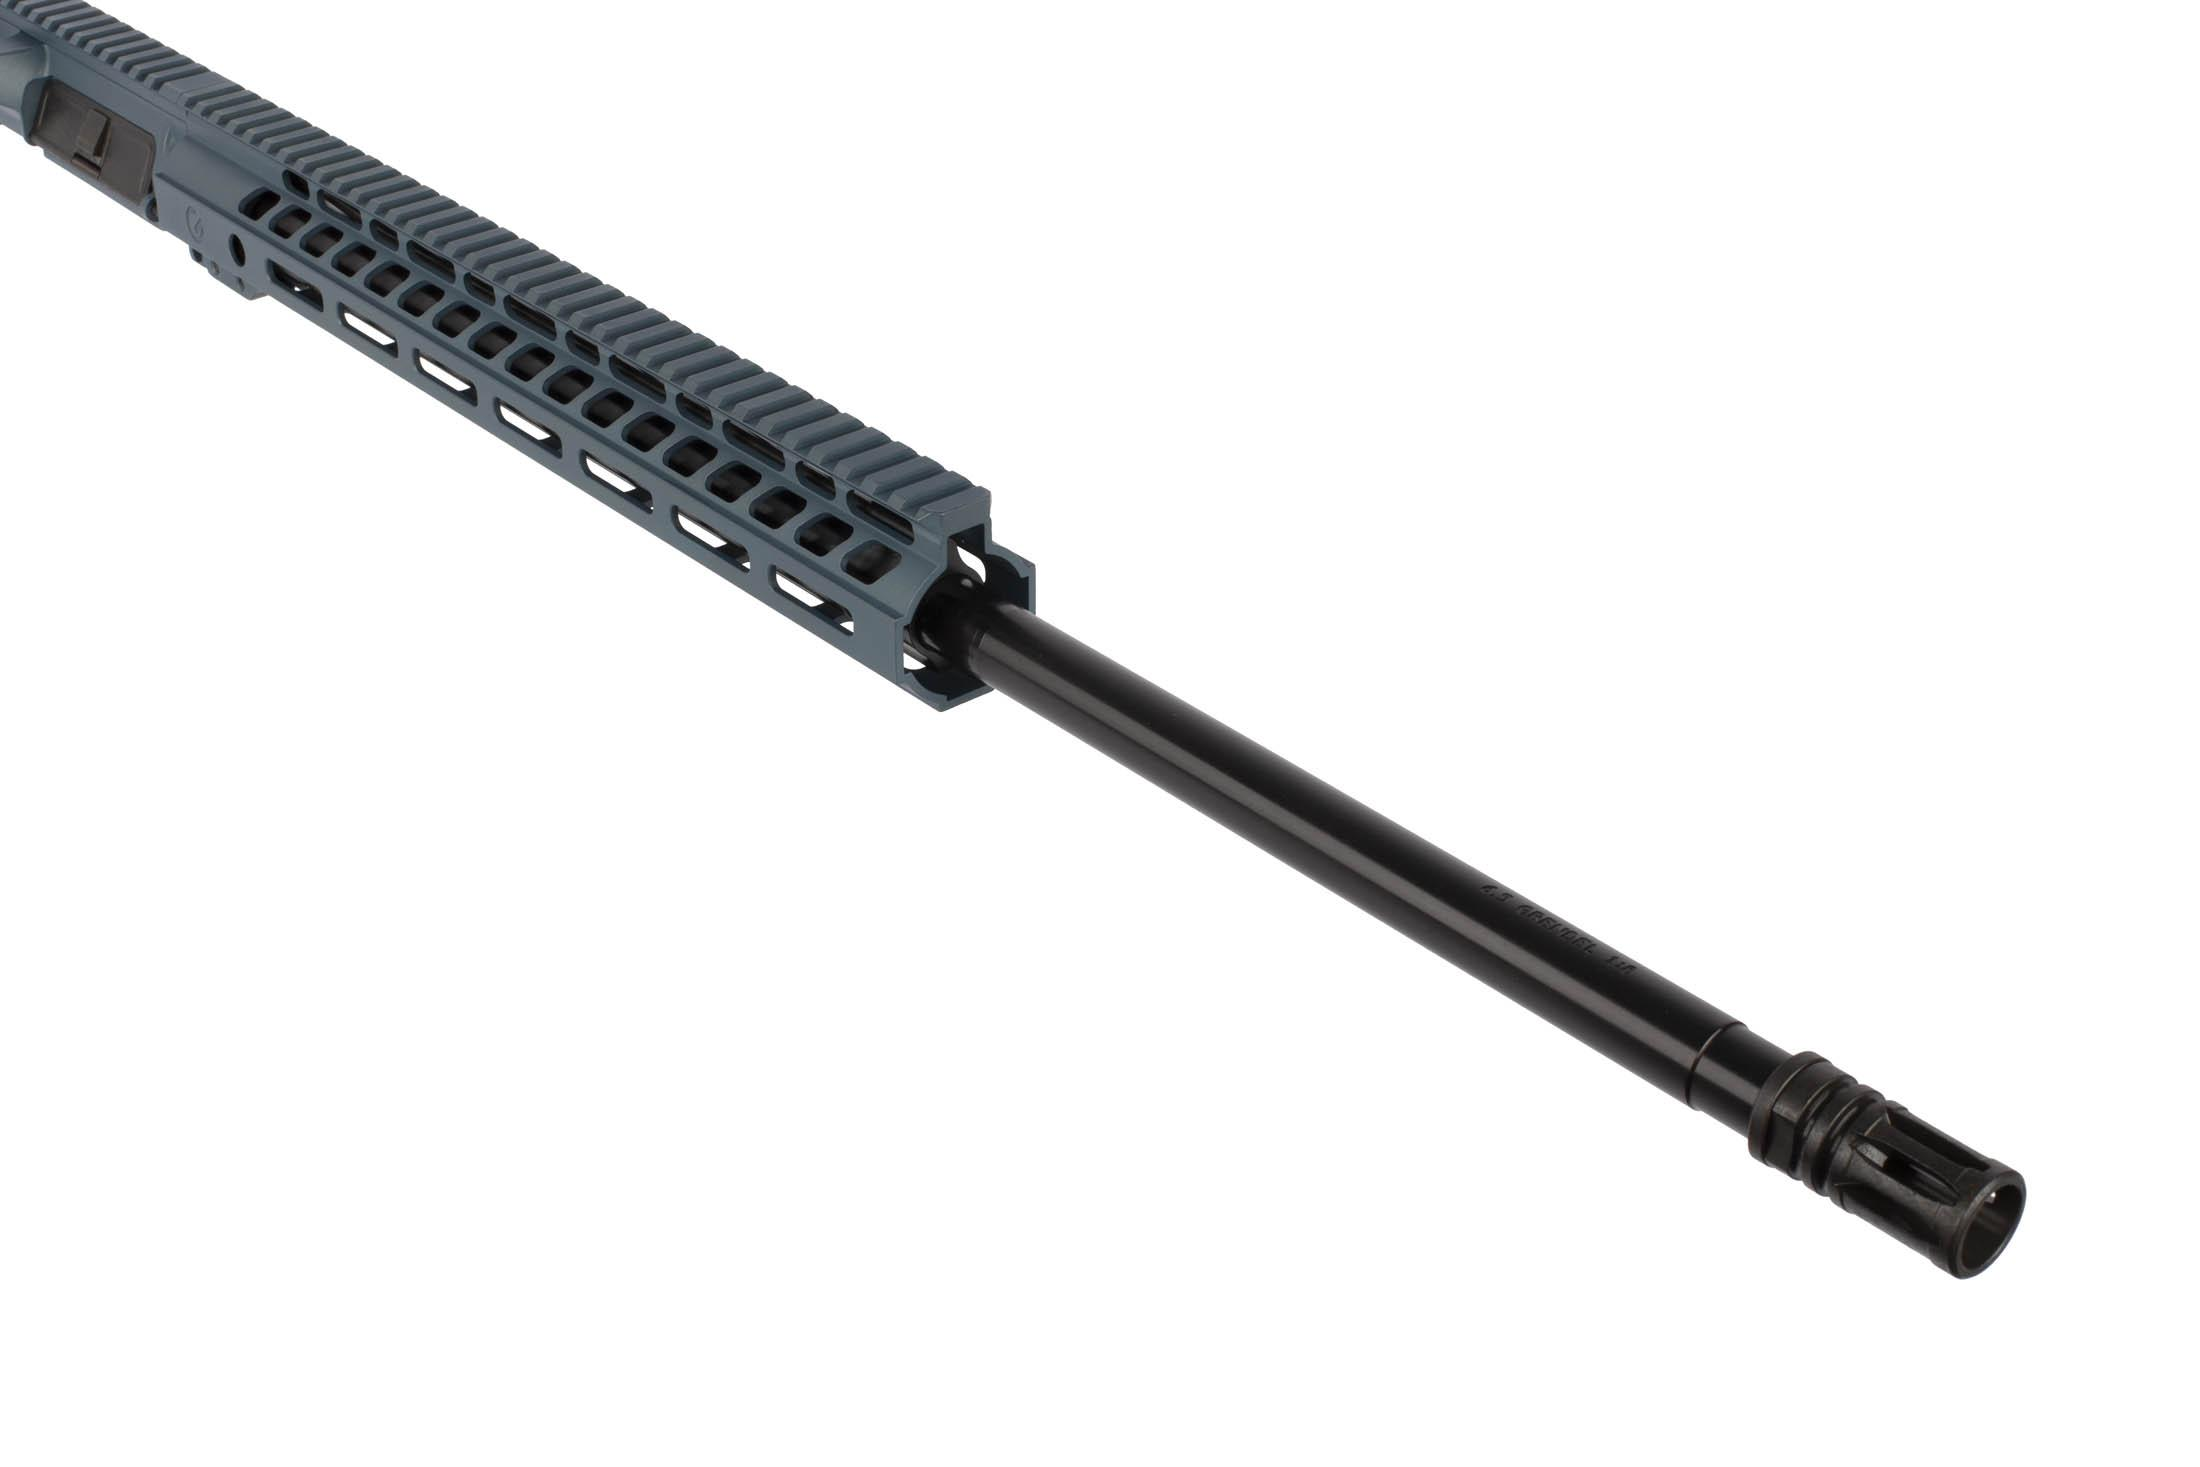 The Ghost Firearms 24 Elite Rifle Length Barreled Upper is chambered in 6.5 Grendel with a 1:8 twist rate